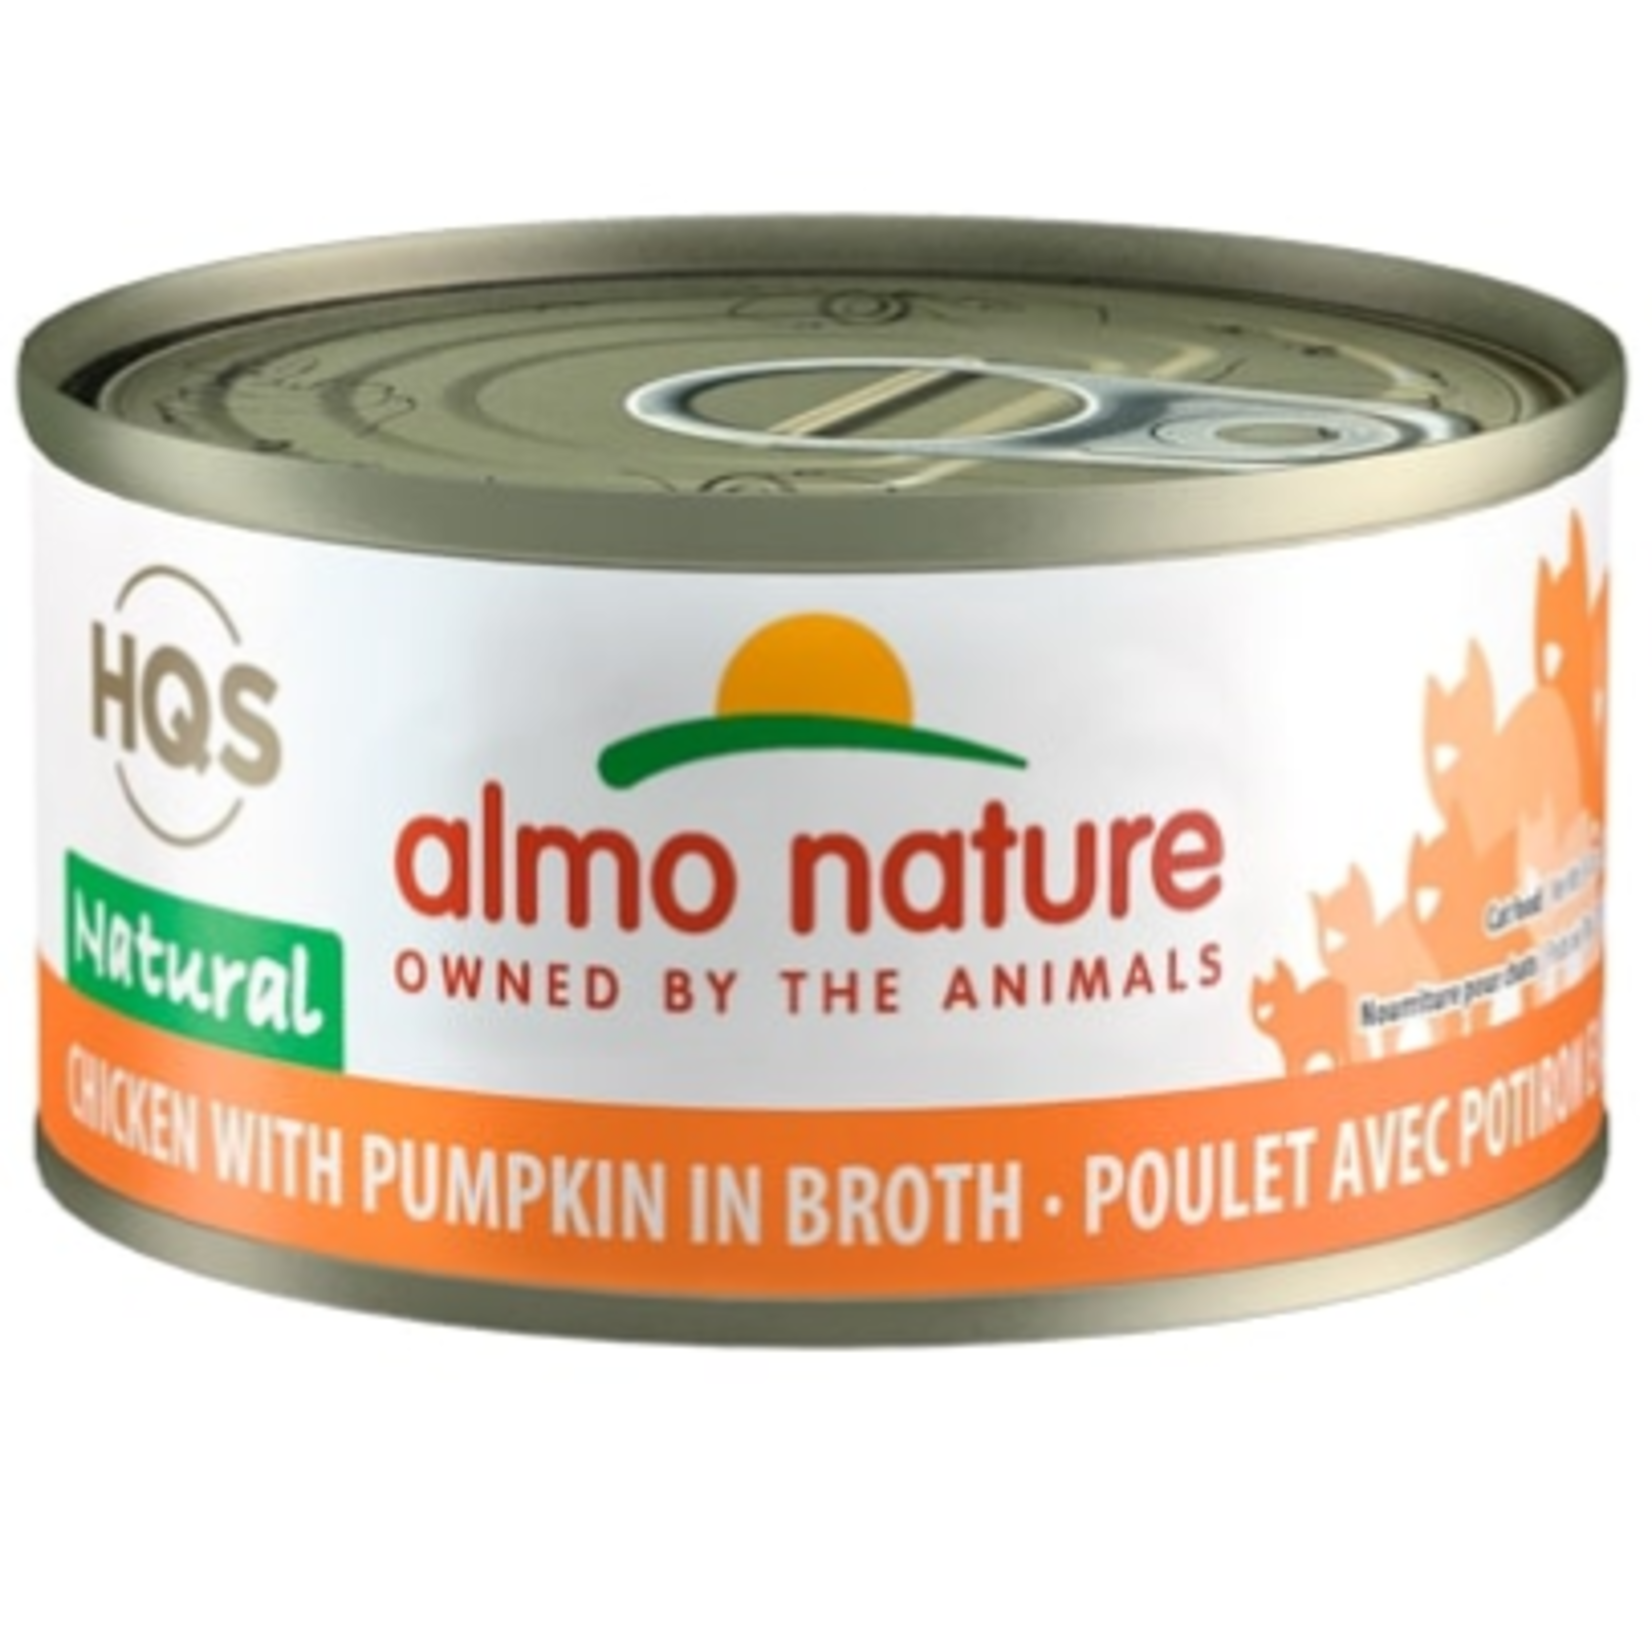 Almo HQS Complete - Chicken with Pumpkin in Broth-70g